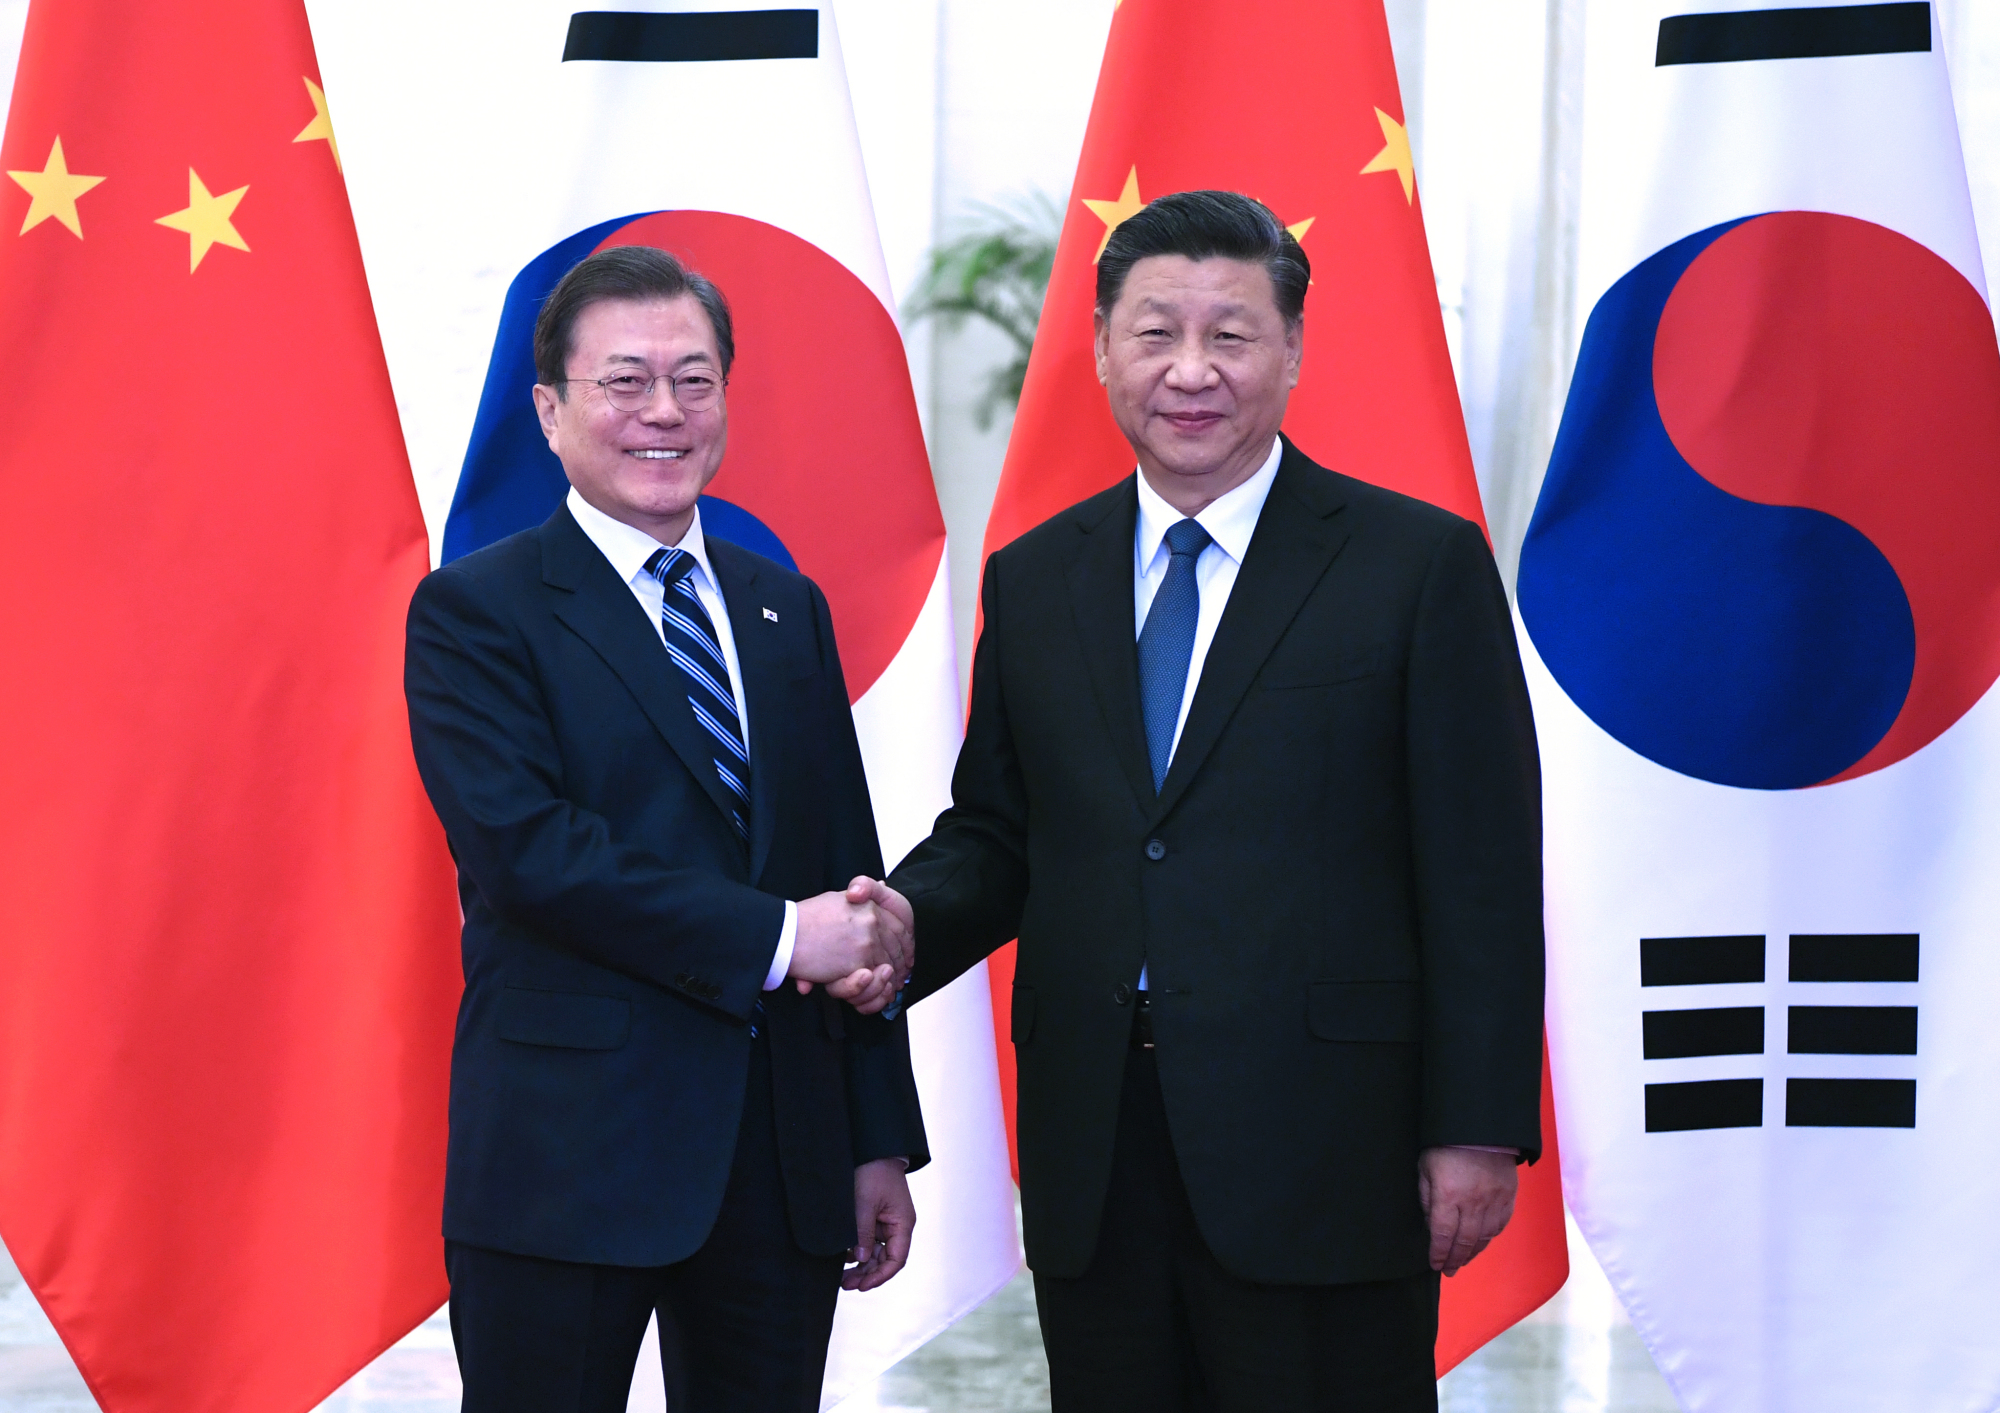 Xi meets ROK president, calls for advancing bilateral ties